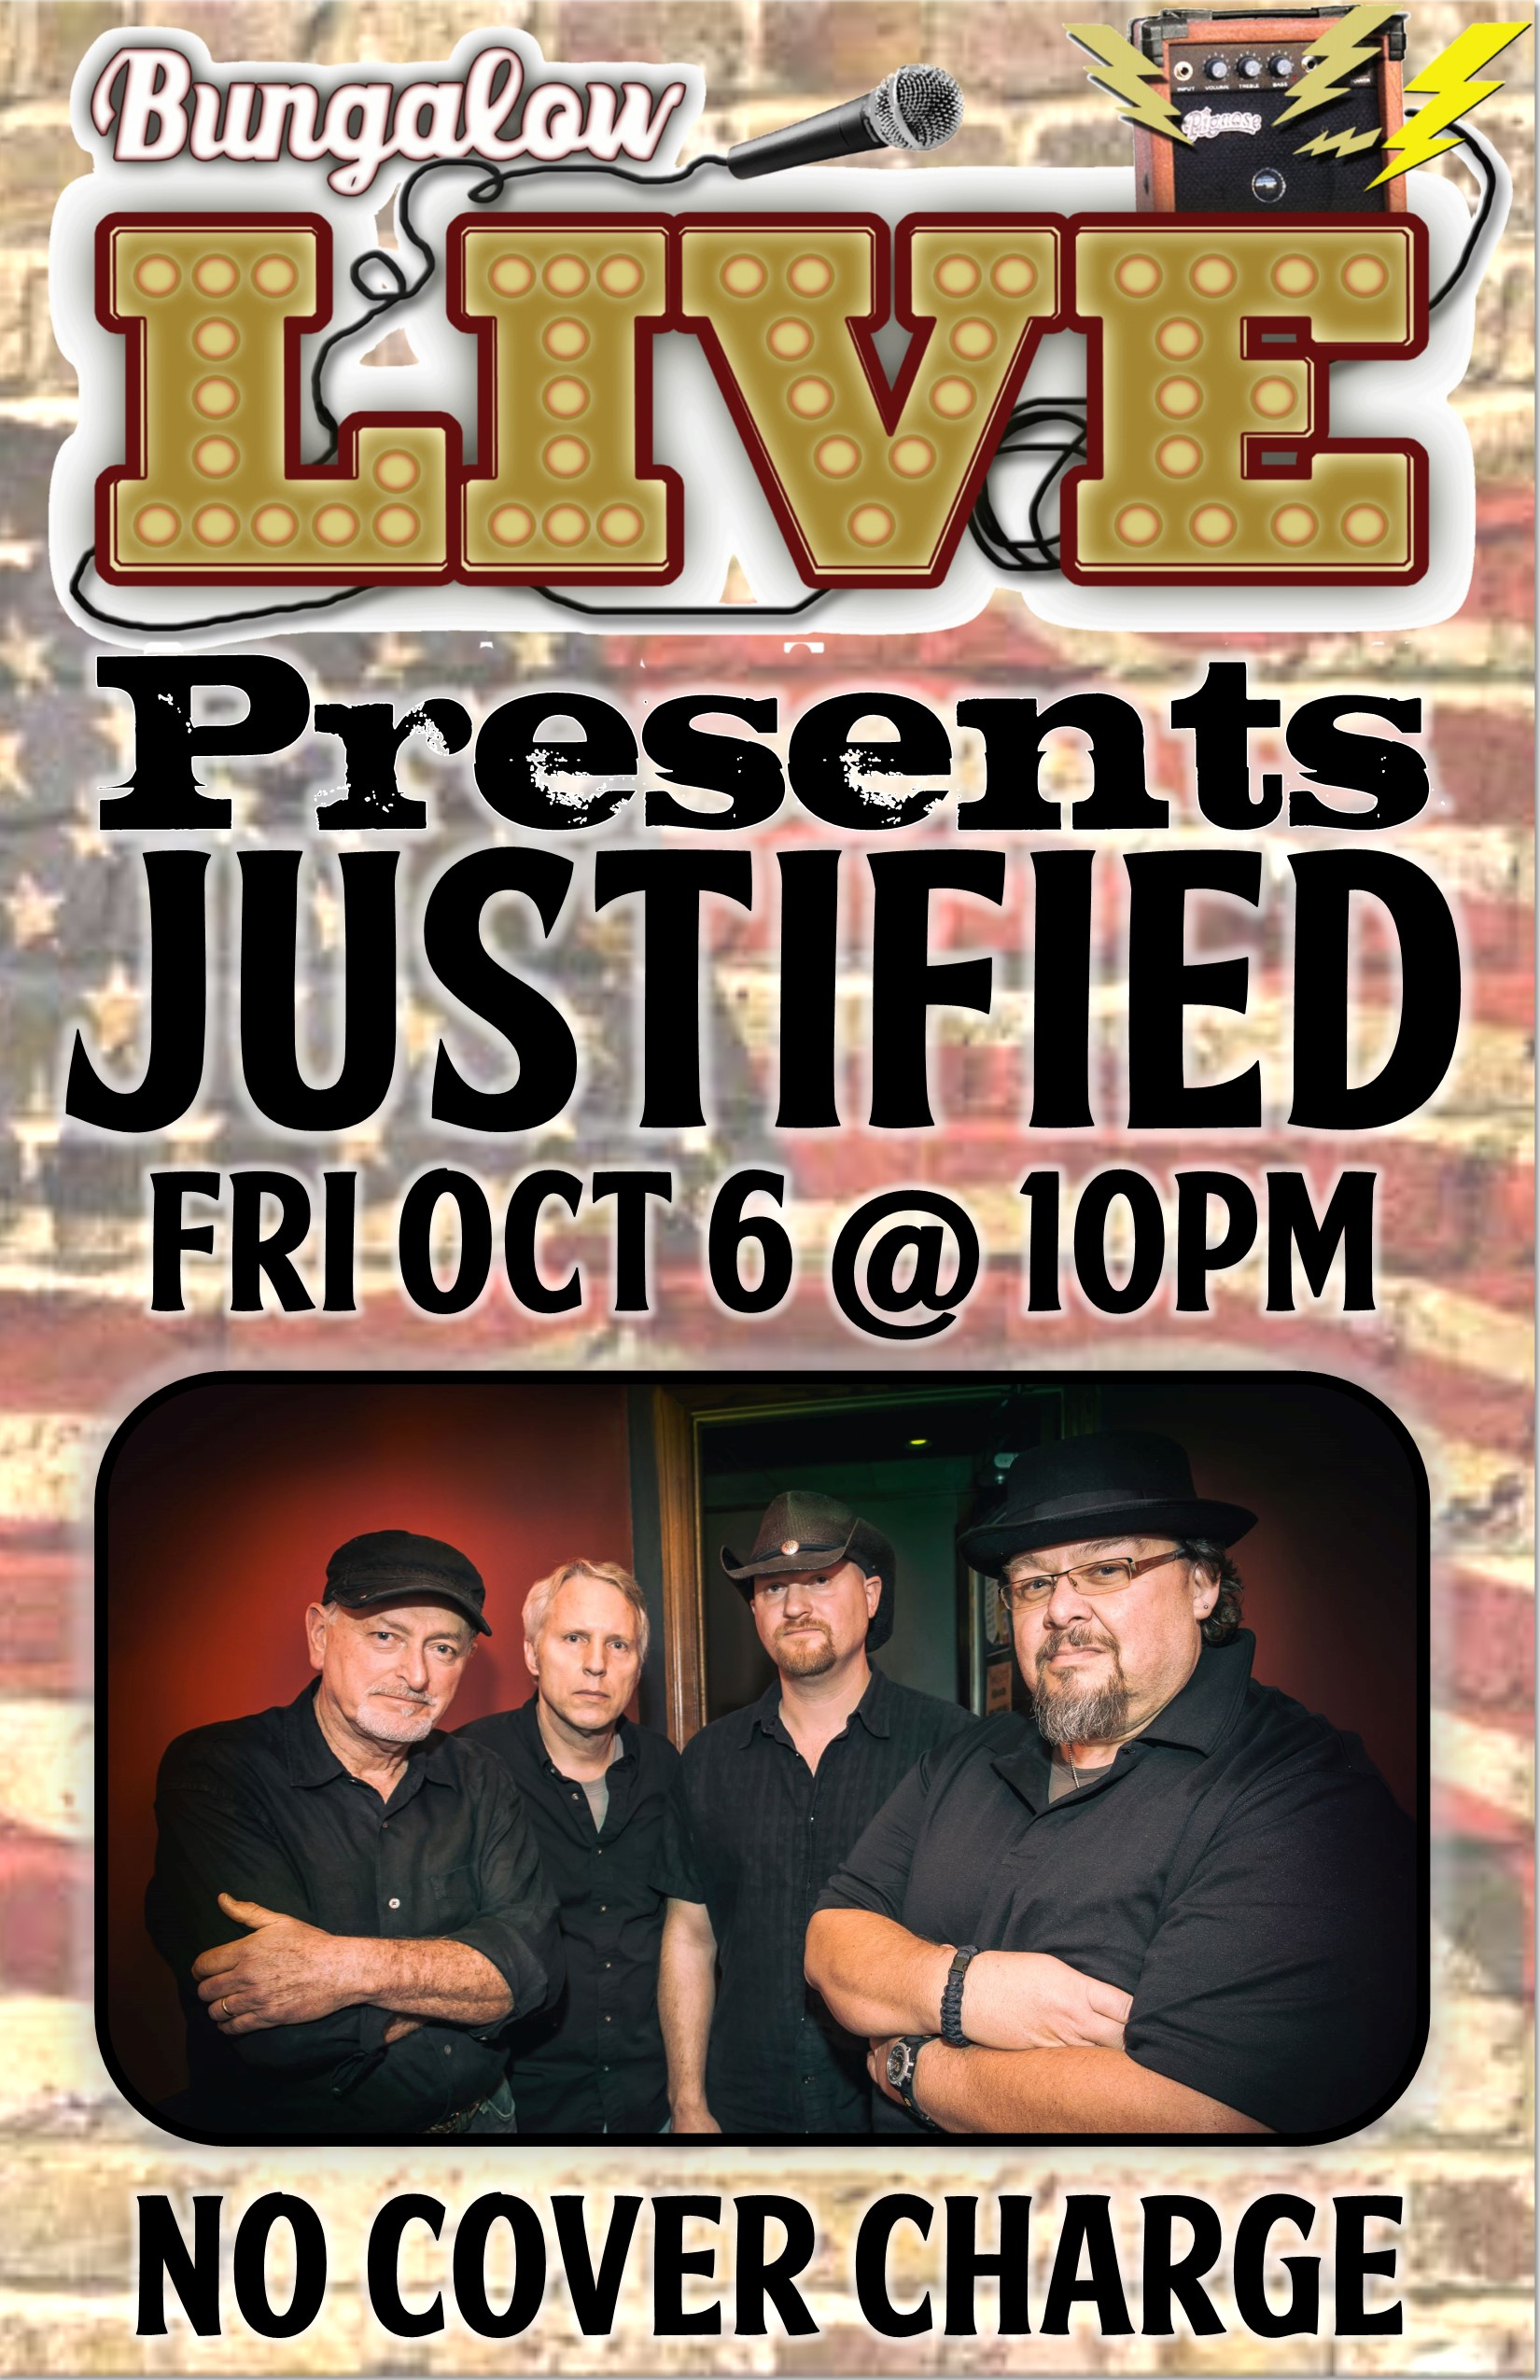 Justified Oct